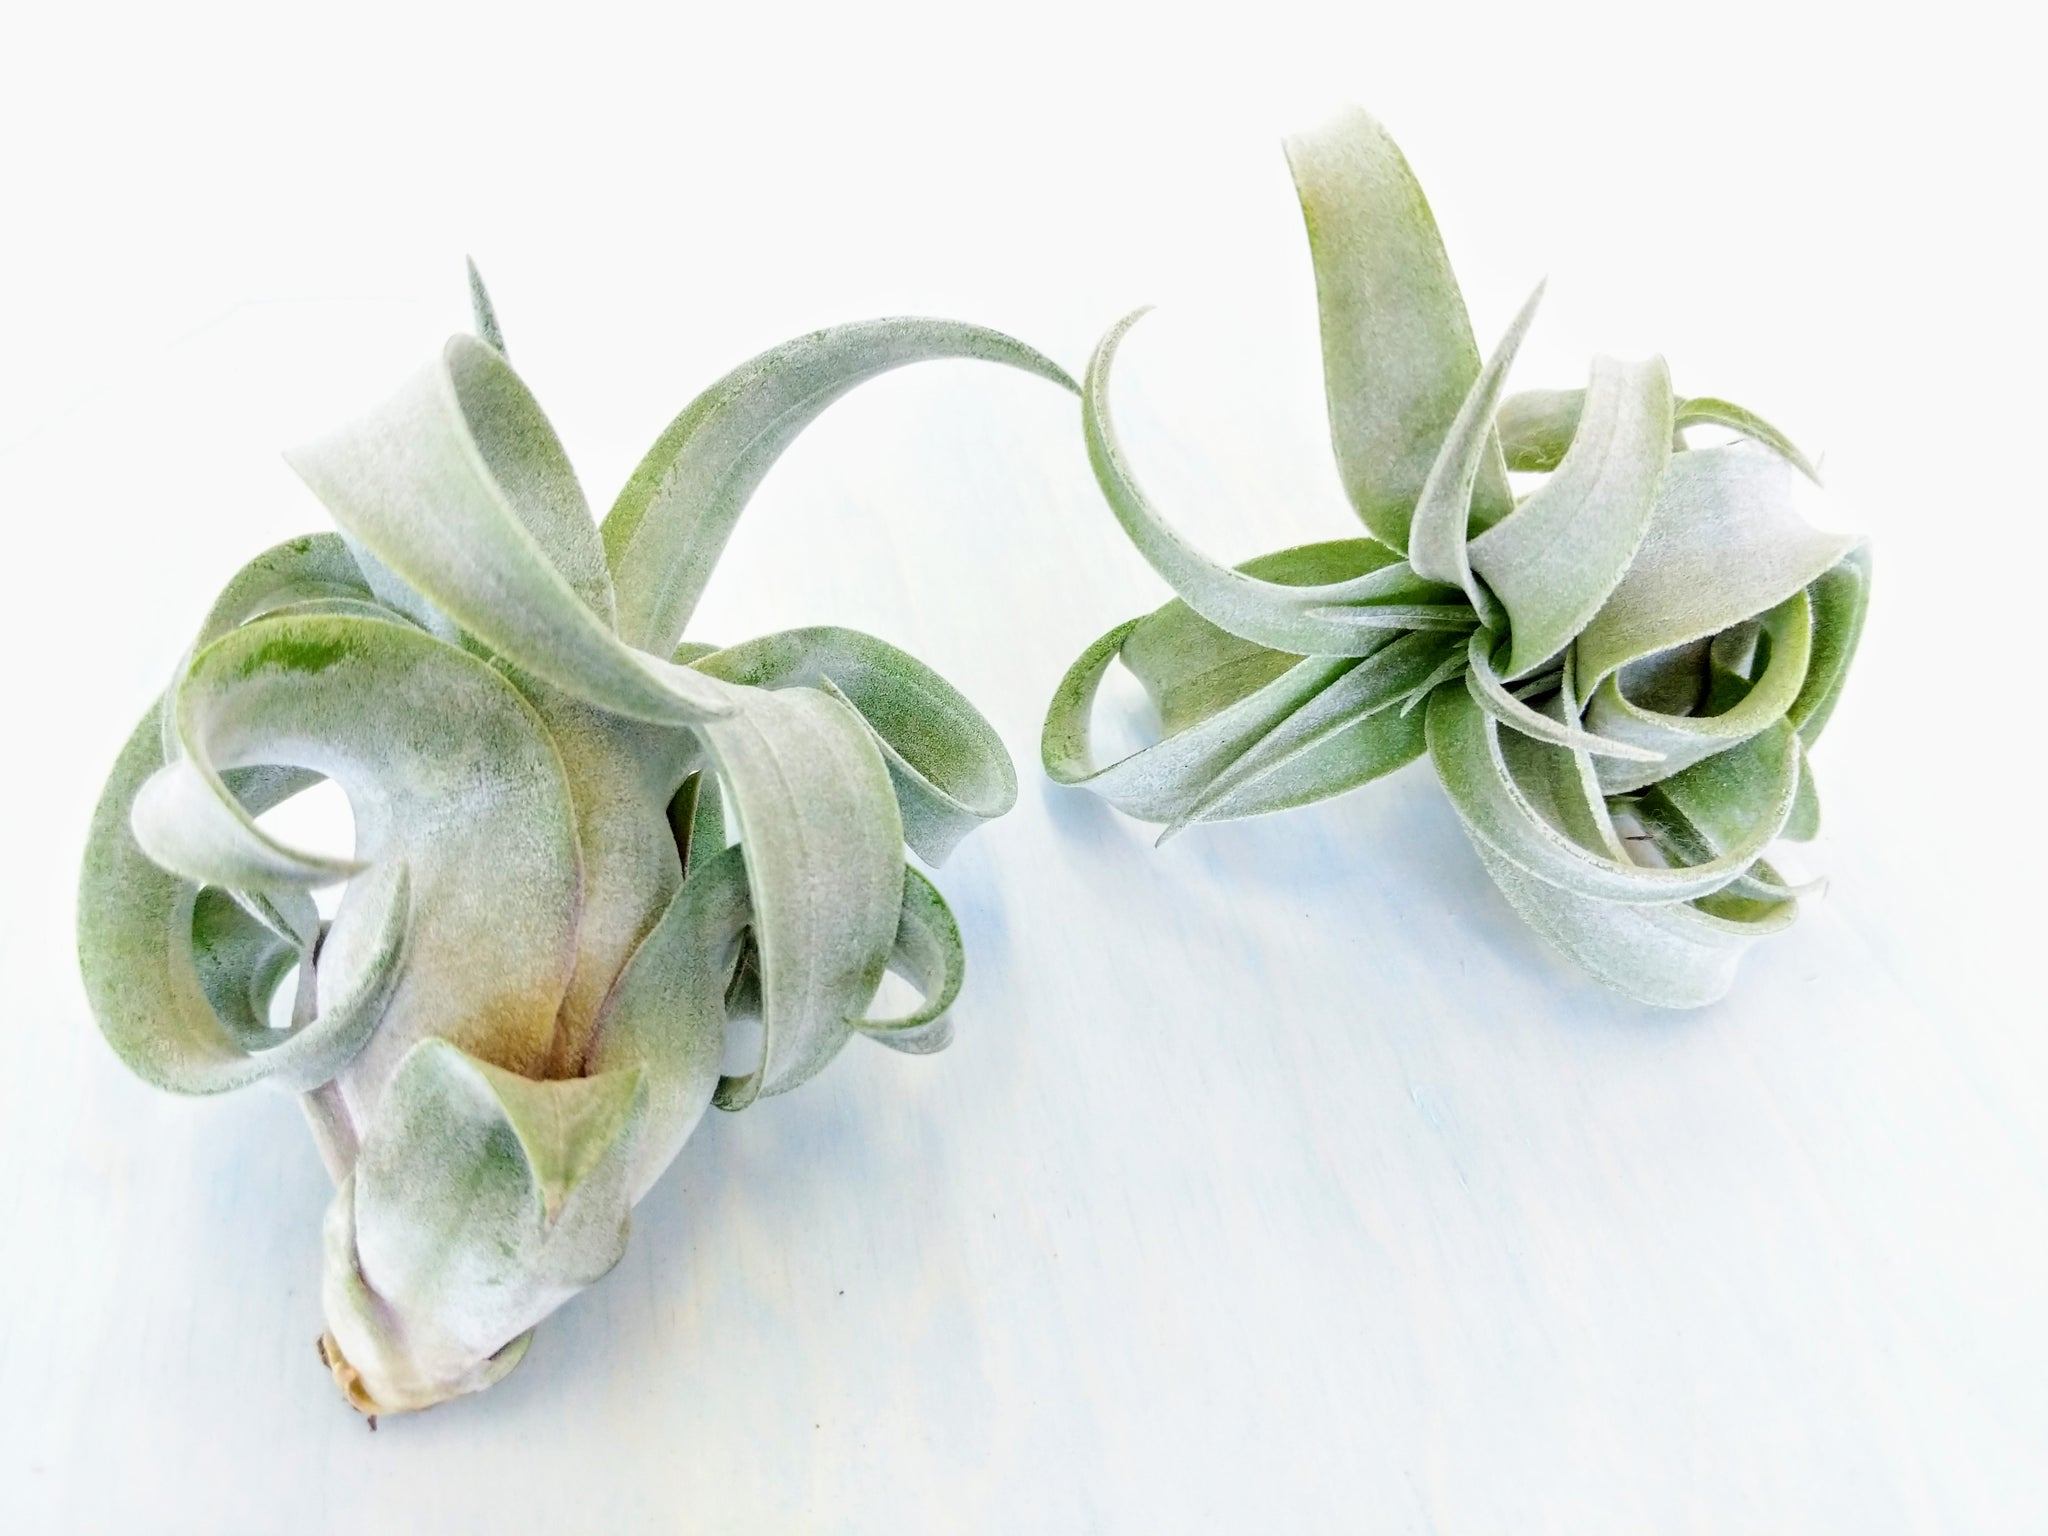 Tillandsia Streptophylla (King Size Air Plants) - By Succuterra | Succulents, Air Plants & Terrariums